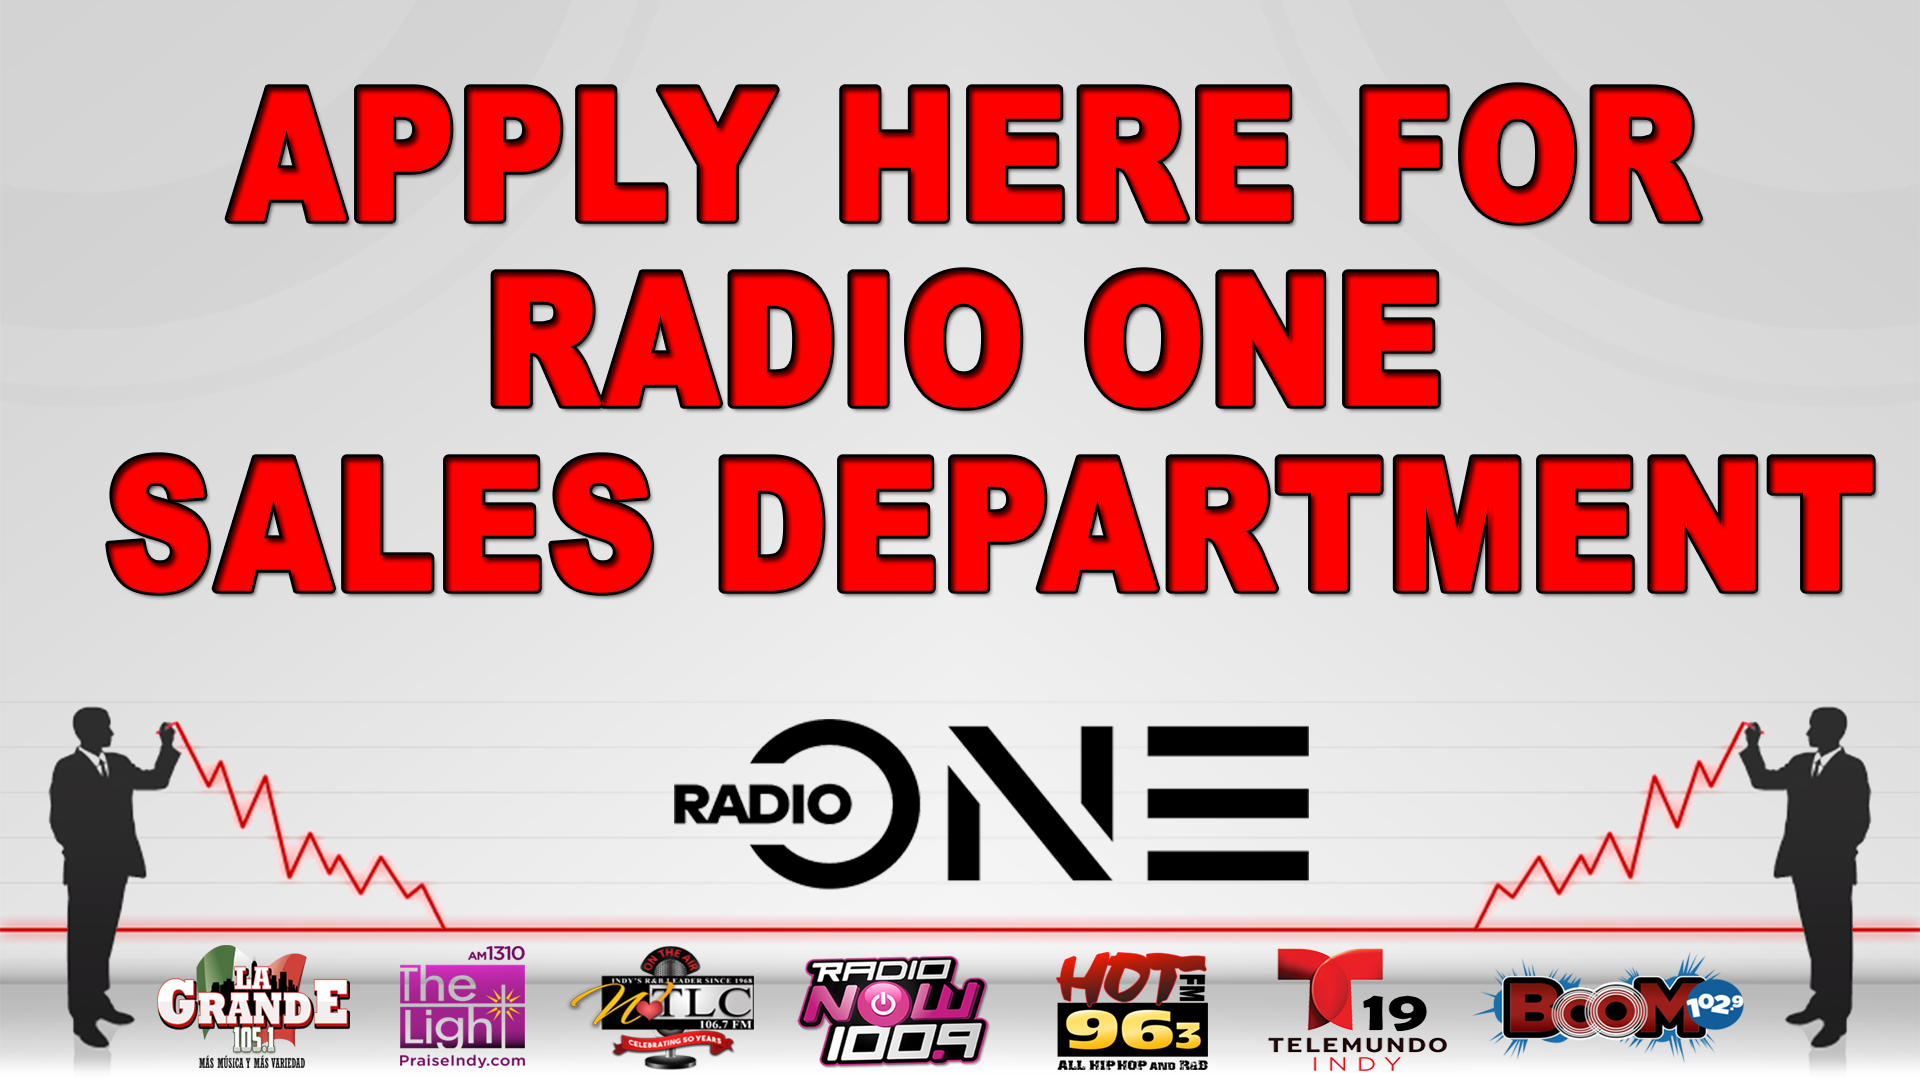 Apply Here For Radio One Sales Department Graphic